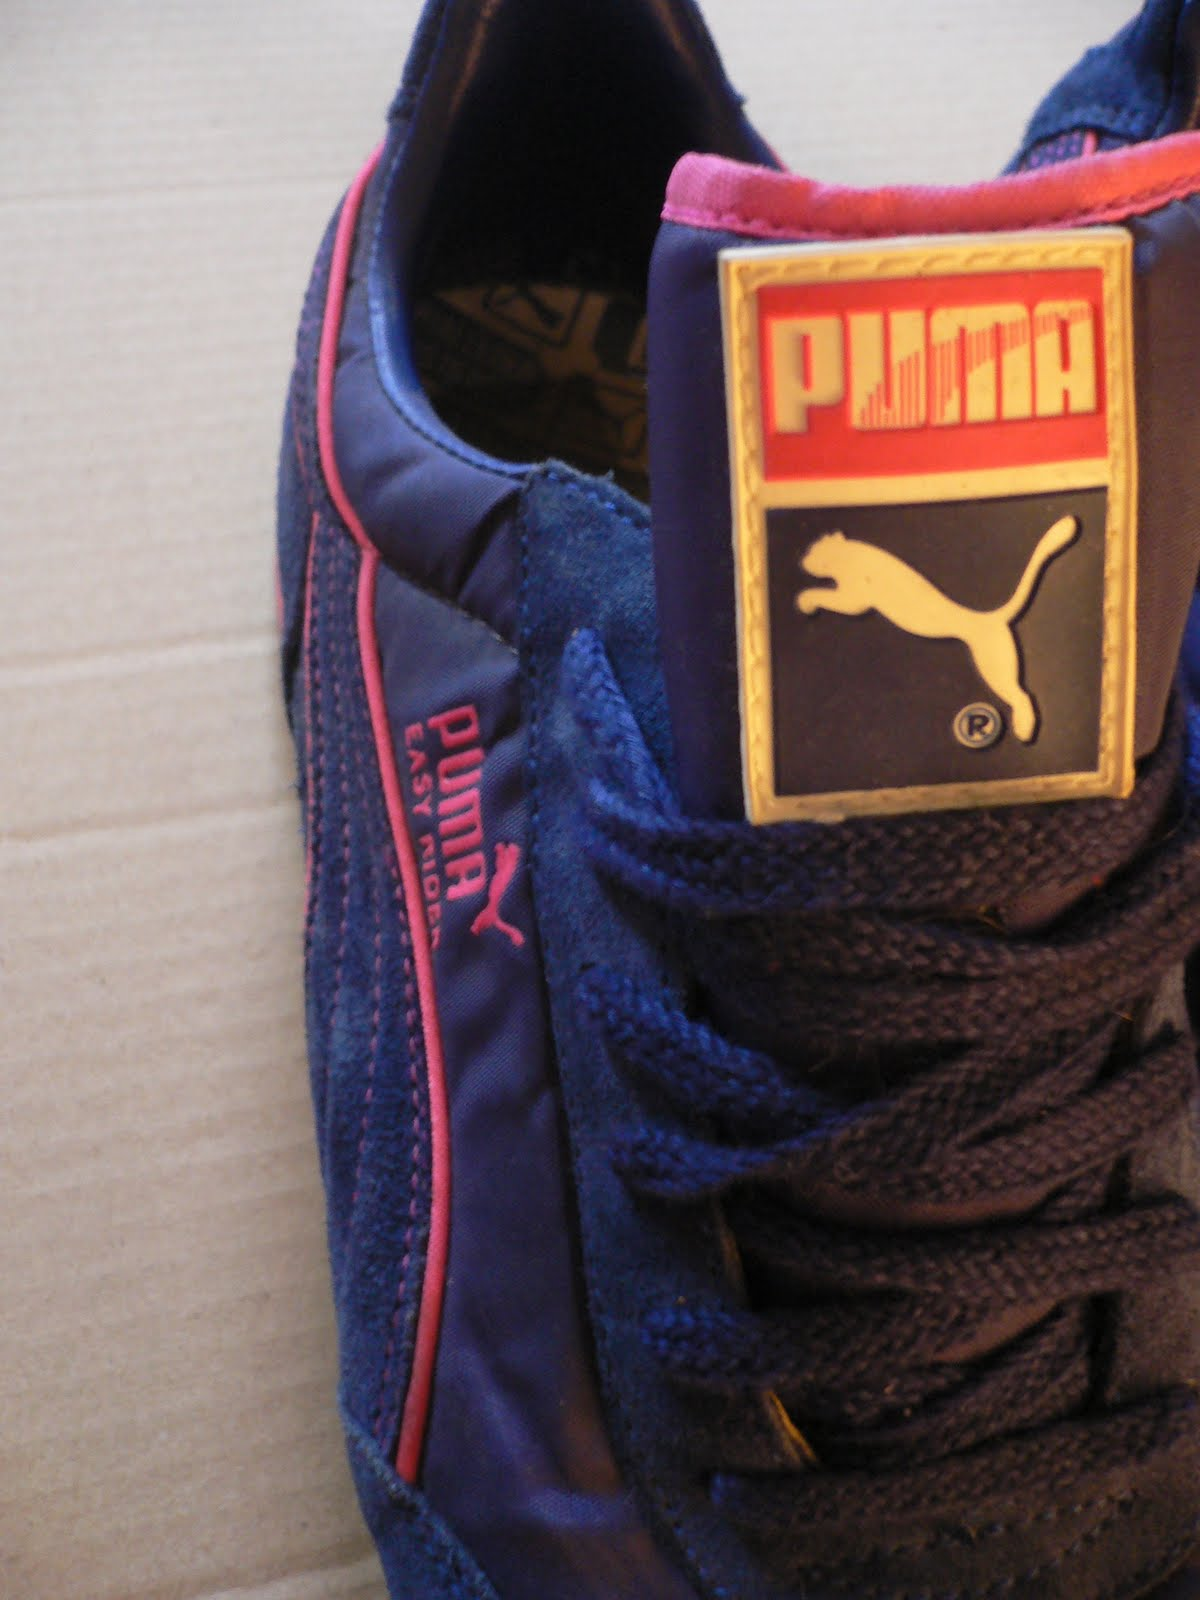 image Puma in a dressing room backstage